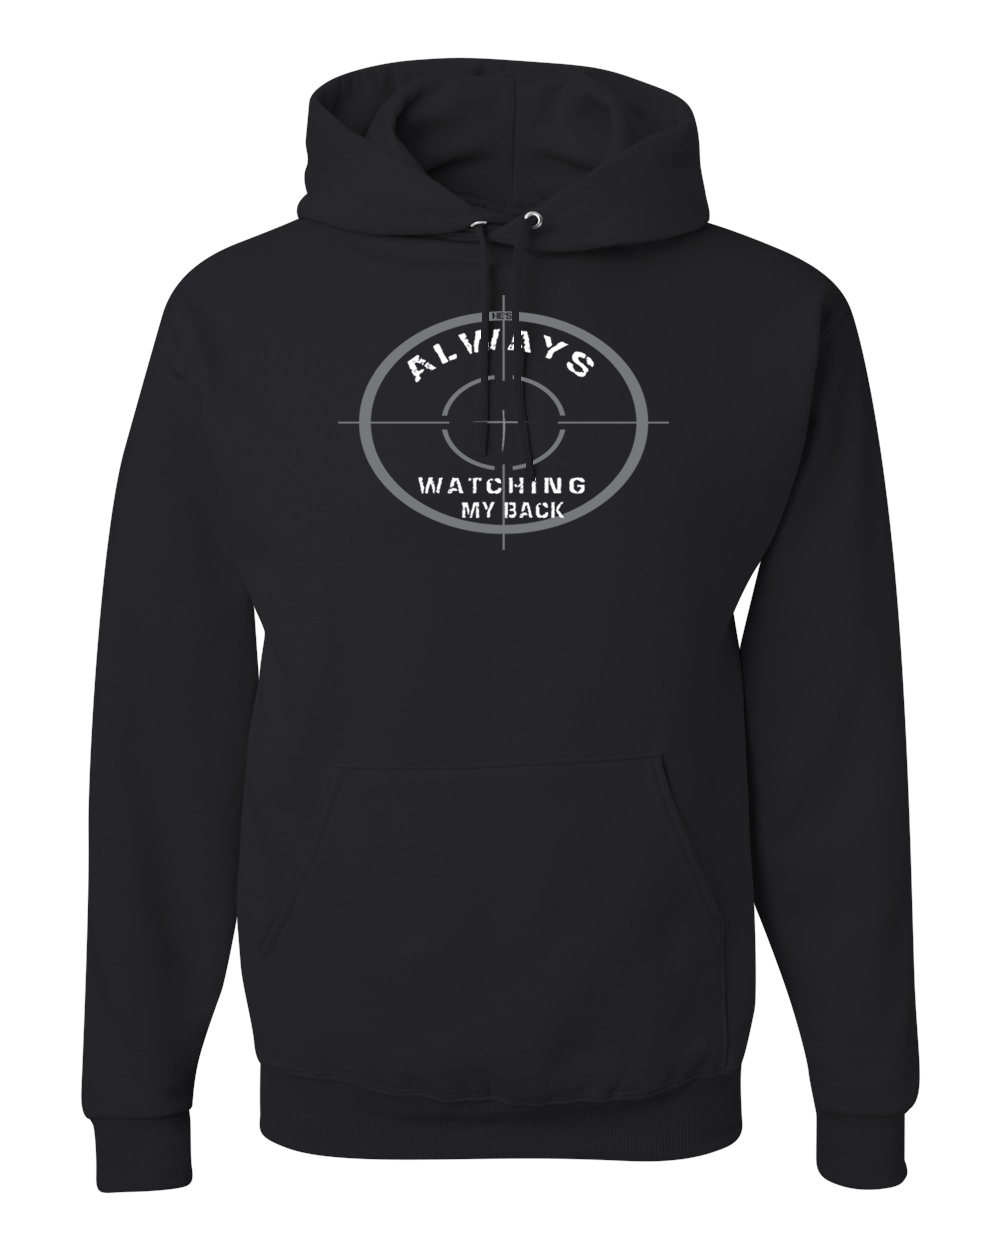 He's Always Watching My Back Hooded Sweatshirt - Small / Black - Christian T-Shirt | Christian Gifts | Christian Apparel - 1